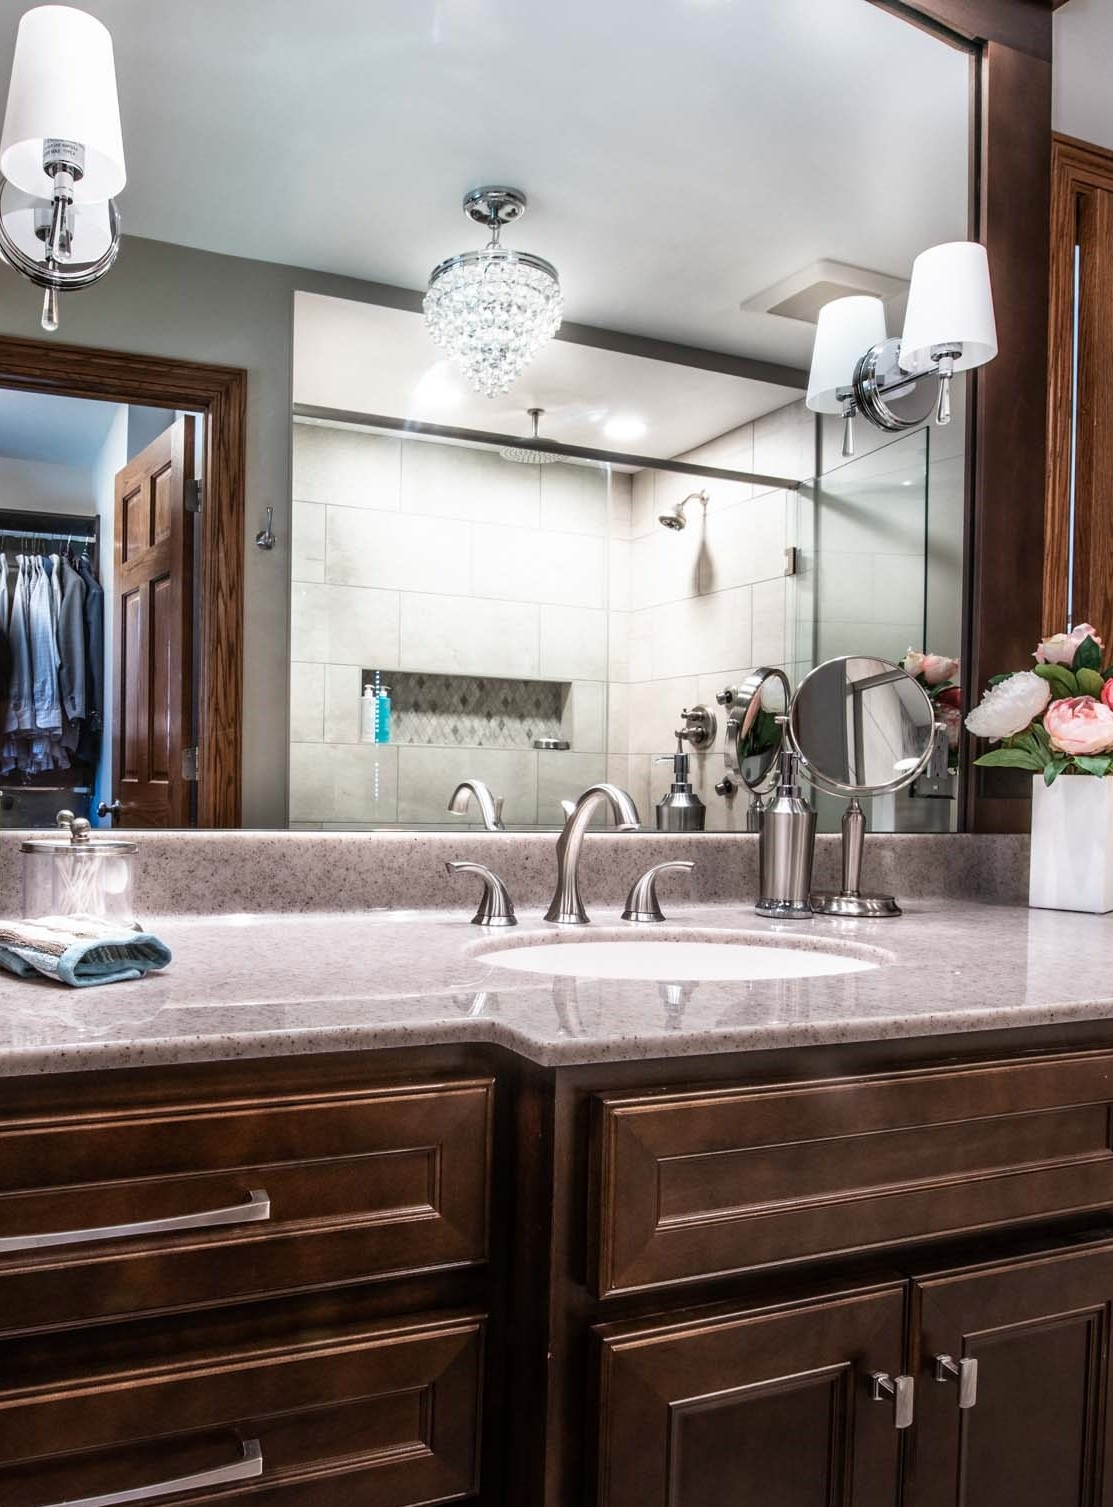 """The flooring Is 18"""" x 18"""" Luxury Vinyl Tile tile By Adura Flex In Century Mineral with Adura Luxury Grout in Pewter."""